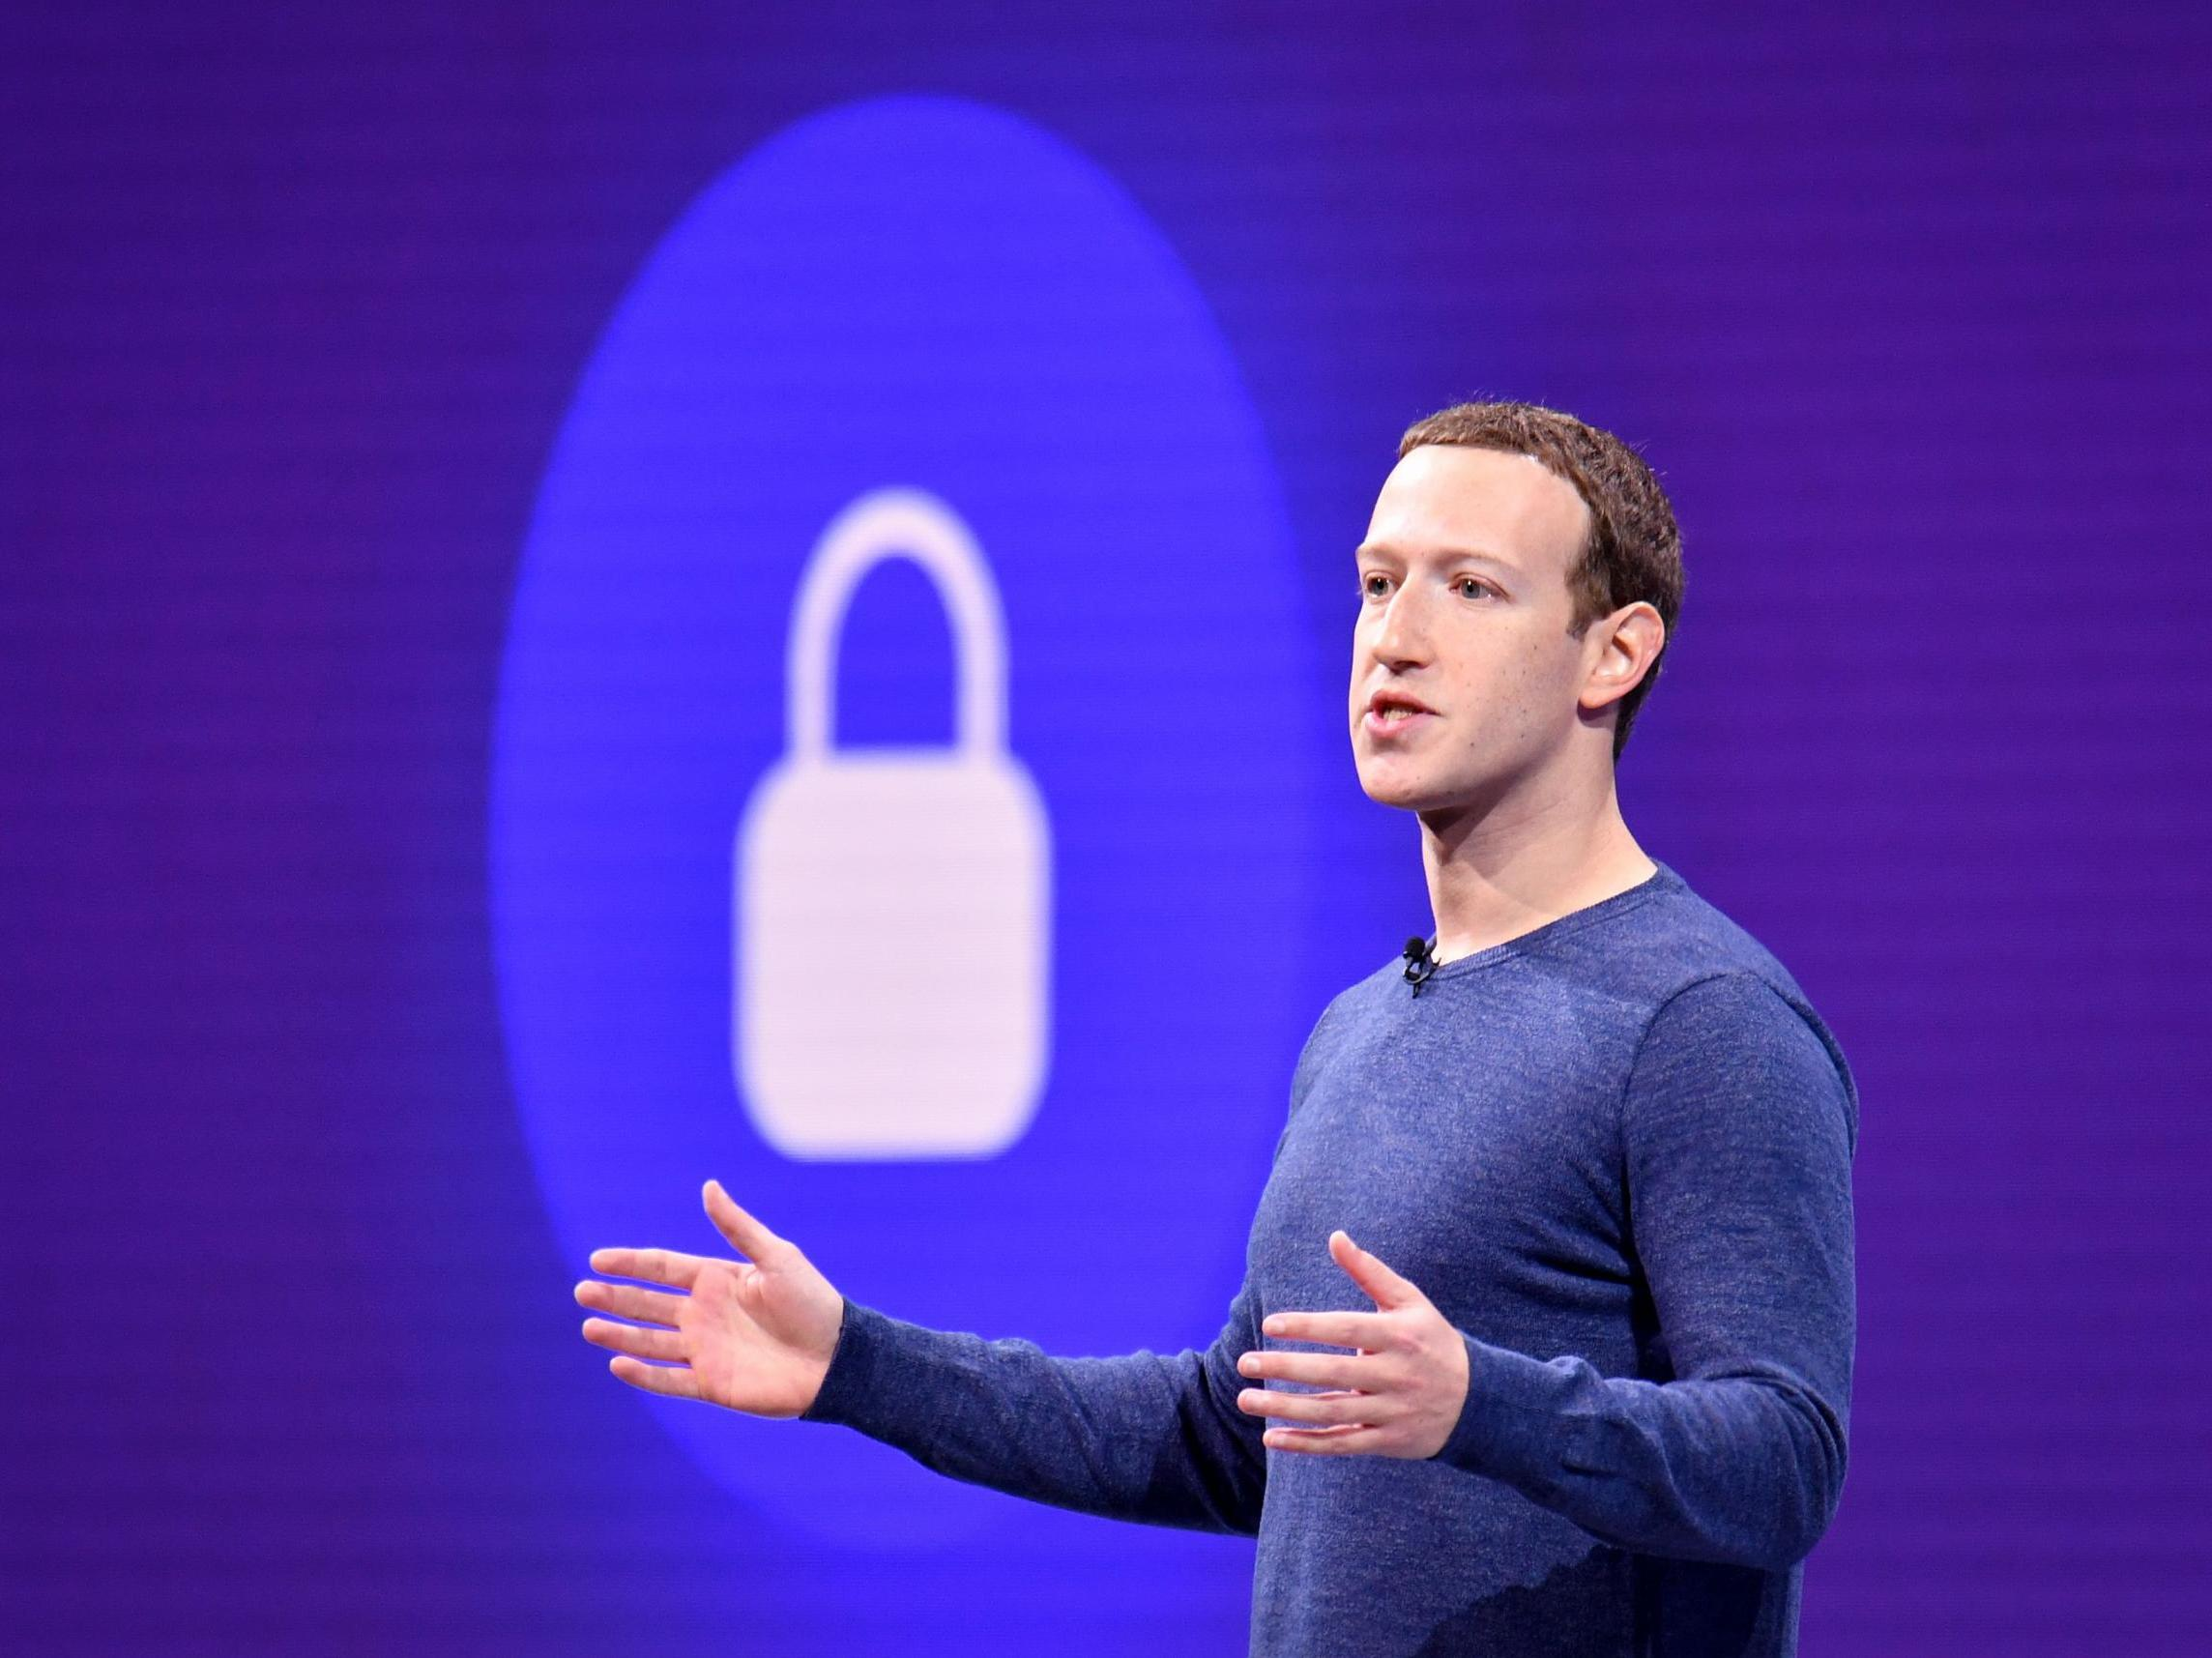 I worked on political ads at Facebook. They profit by manipulating us